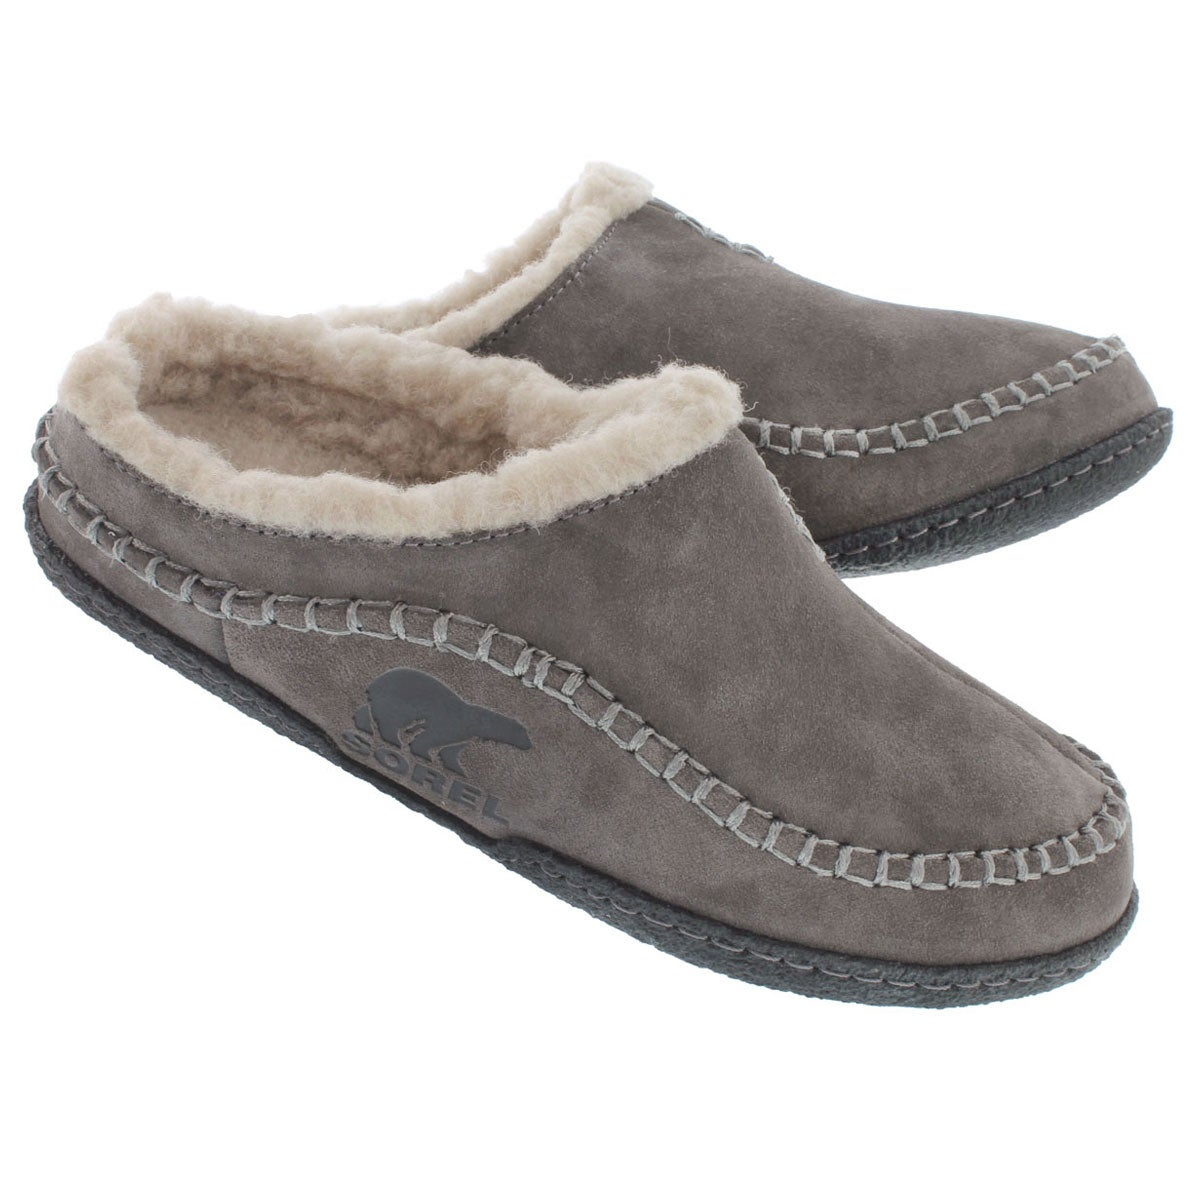 Mns Falcon Ridge shale open back slipper